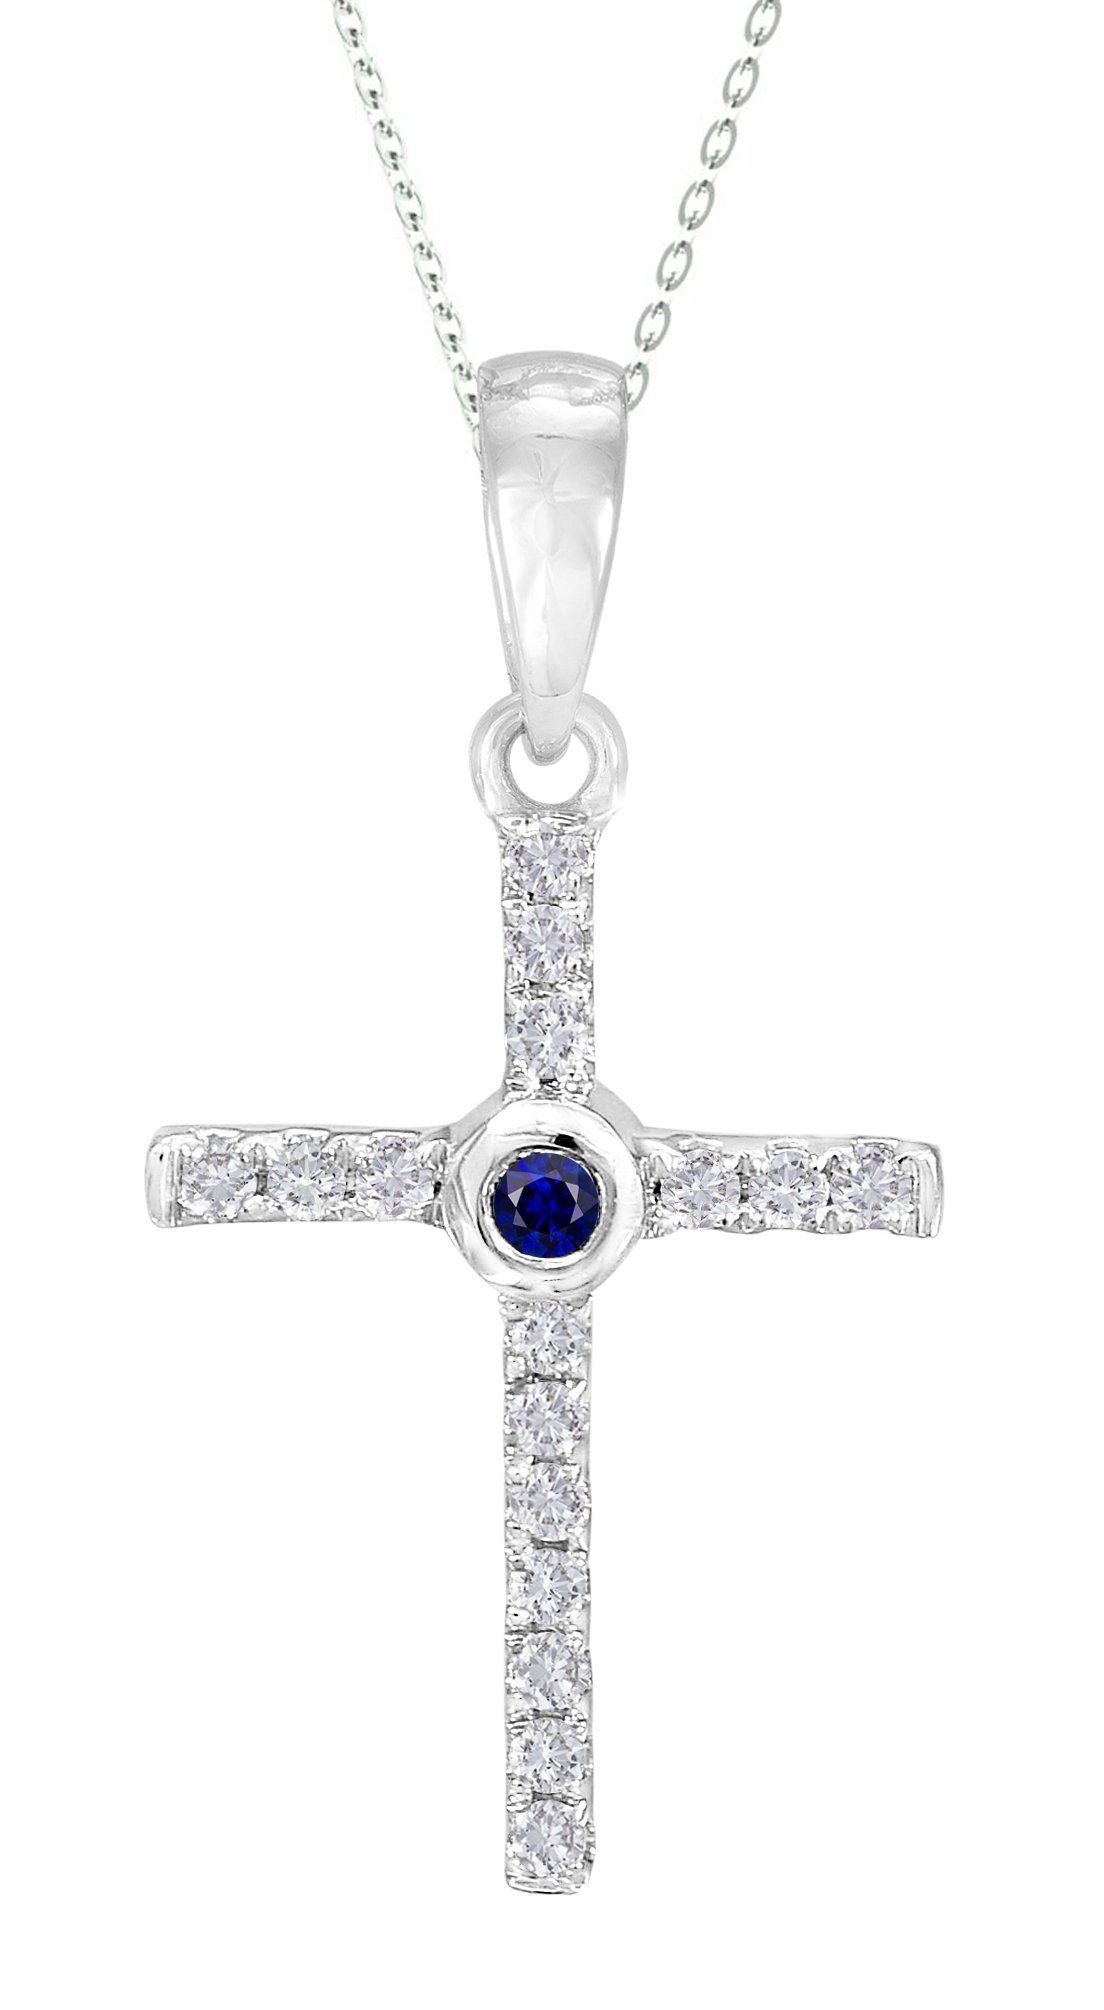 d304b6b3f1631c 14k White Gold Natural Blue Sapphire and Diamond Cross Pendant with Gold  Plated 925 Silver Necklace